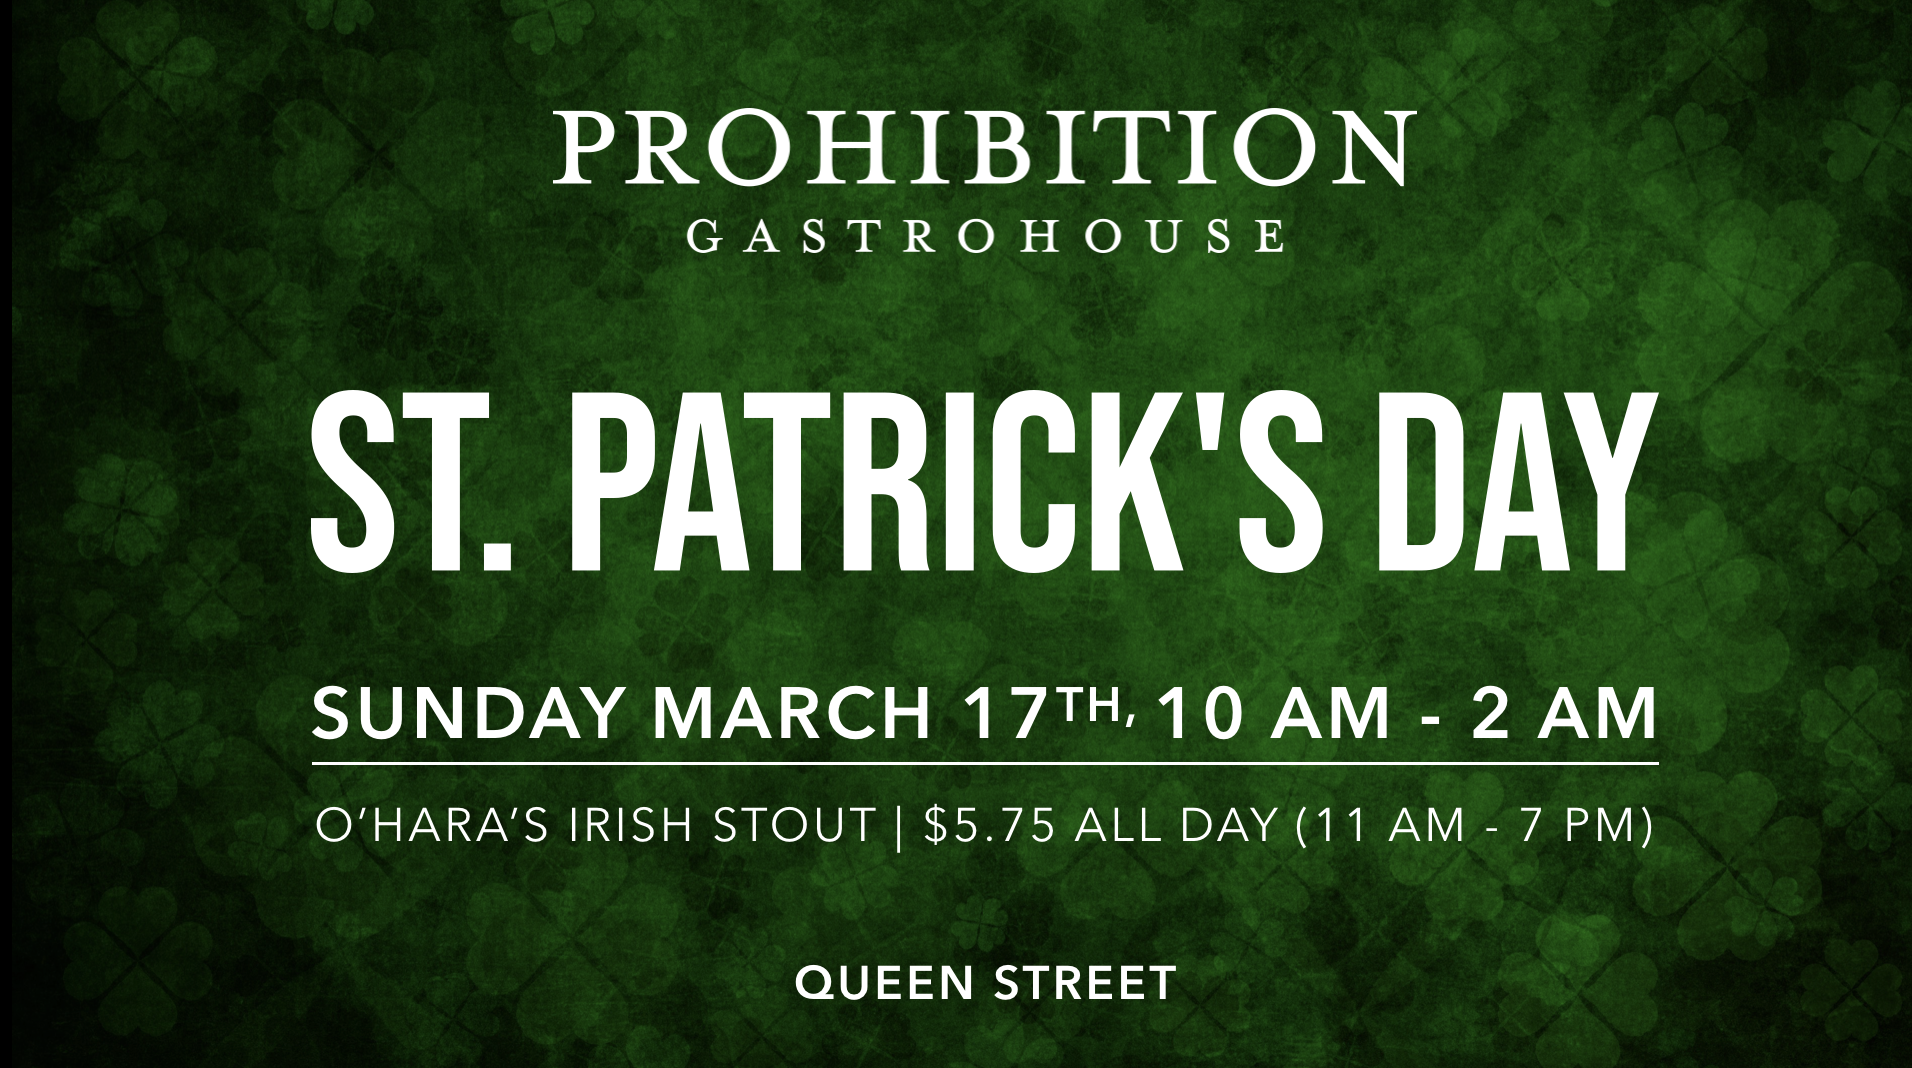 Prohibition Gastrohouse St. Patrick's Day 2019